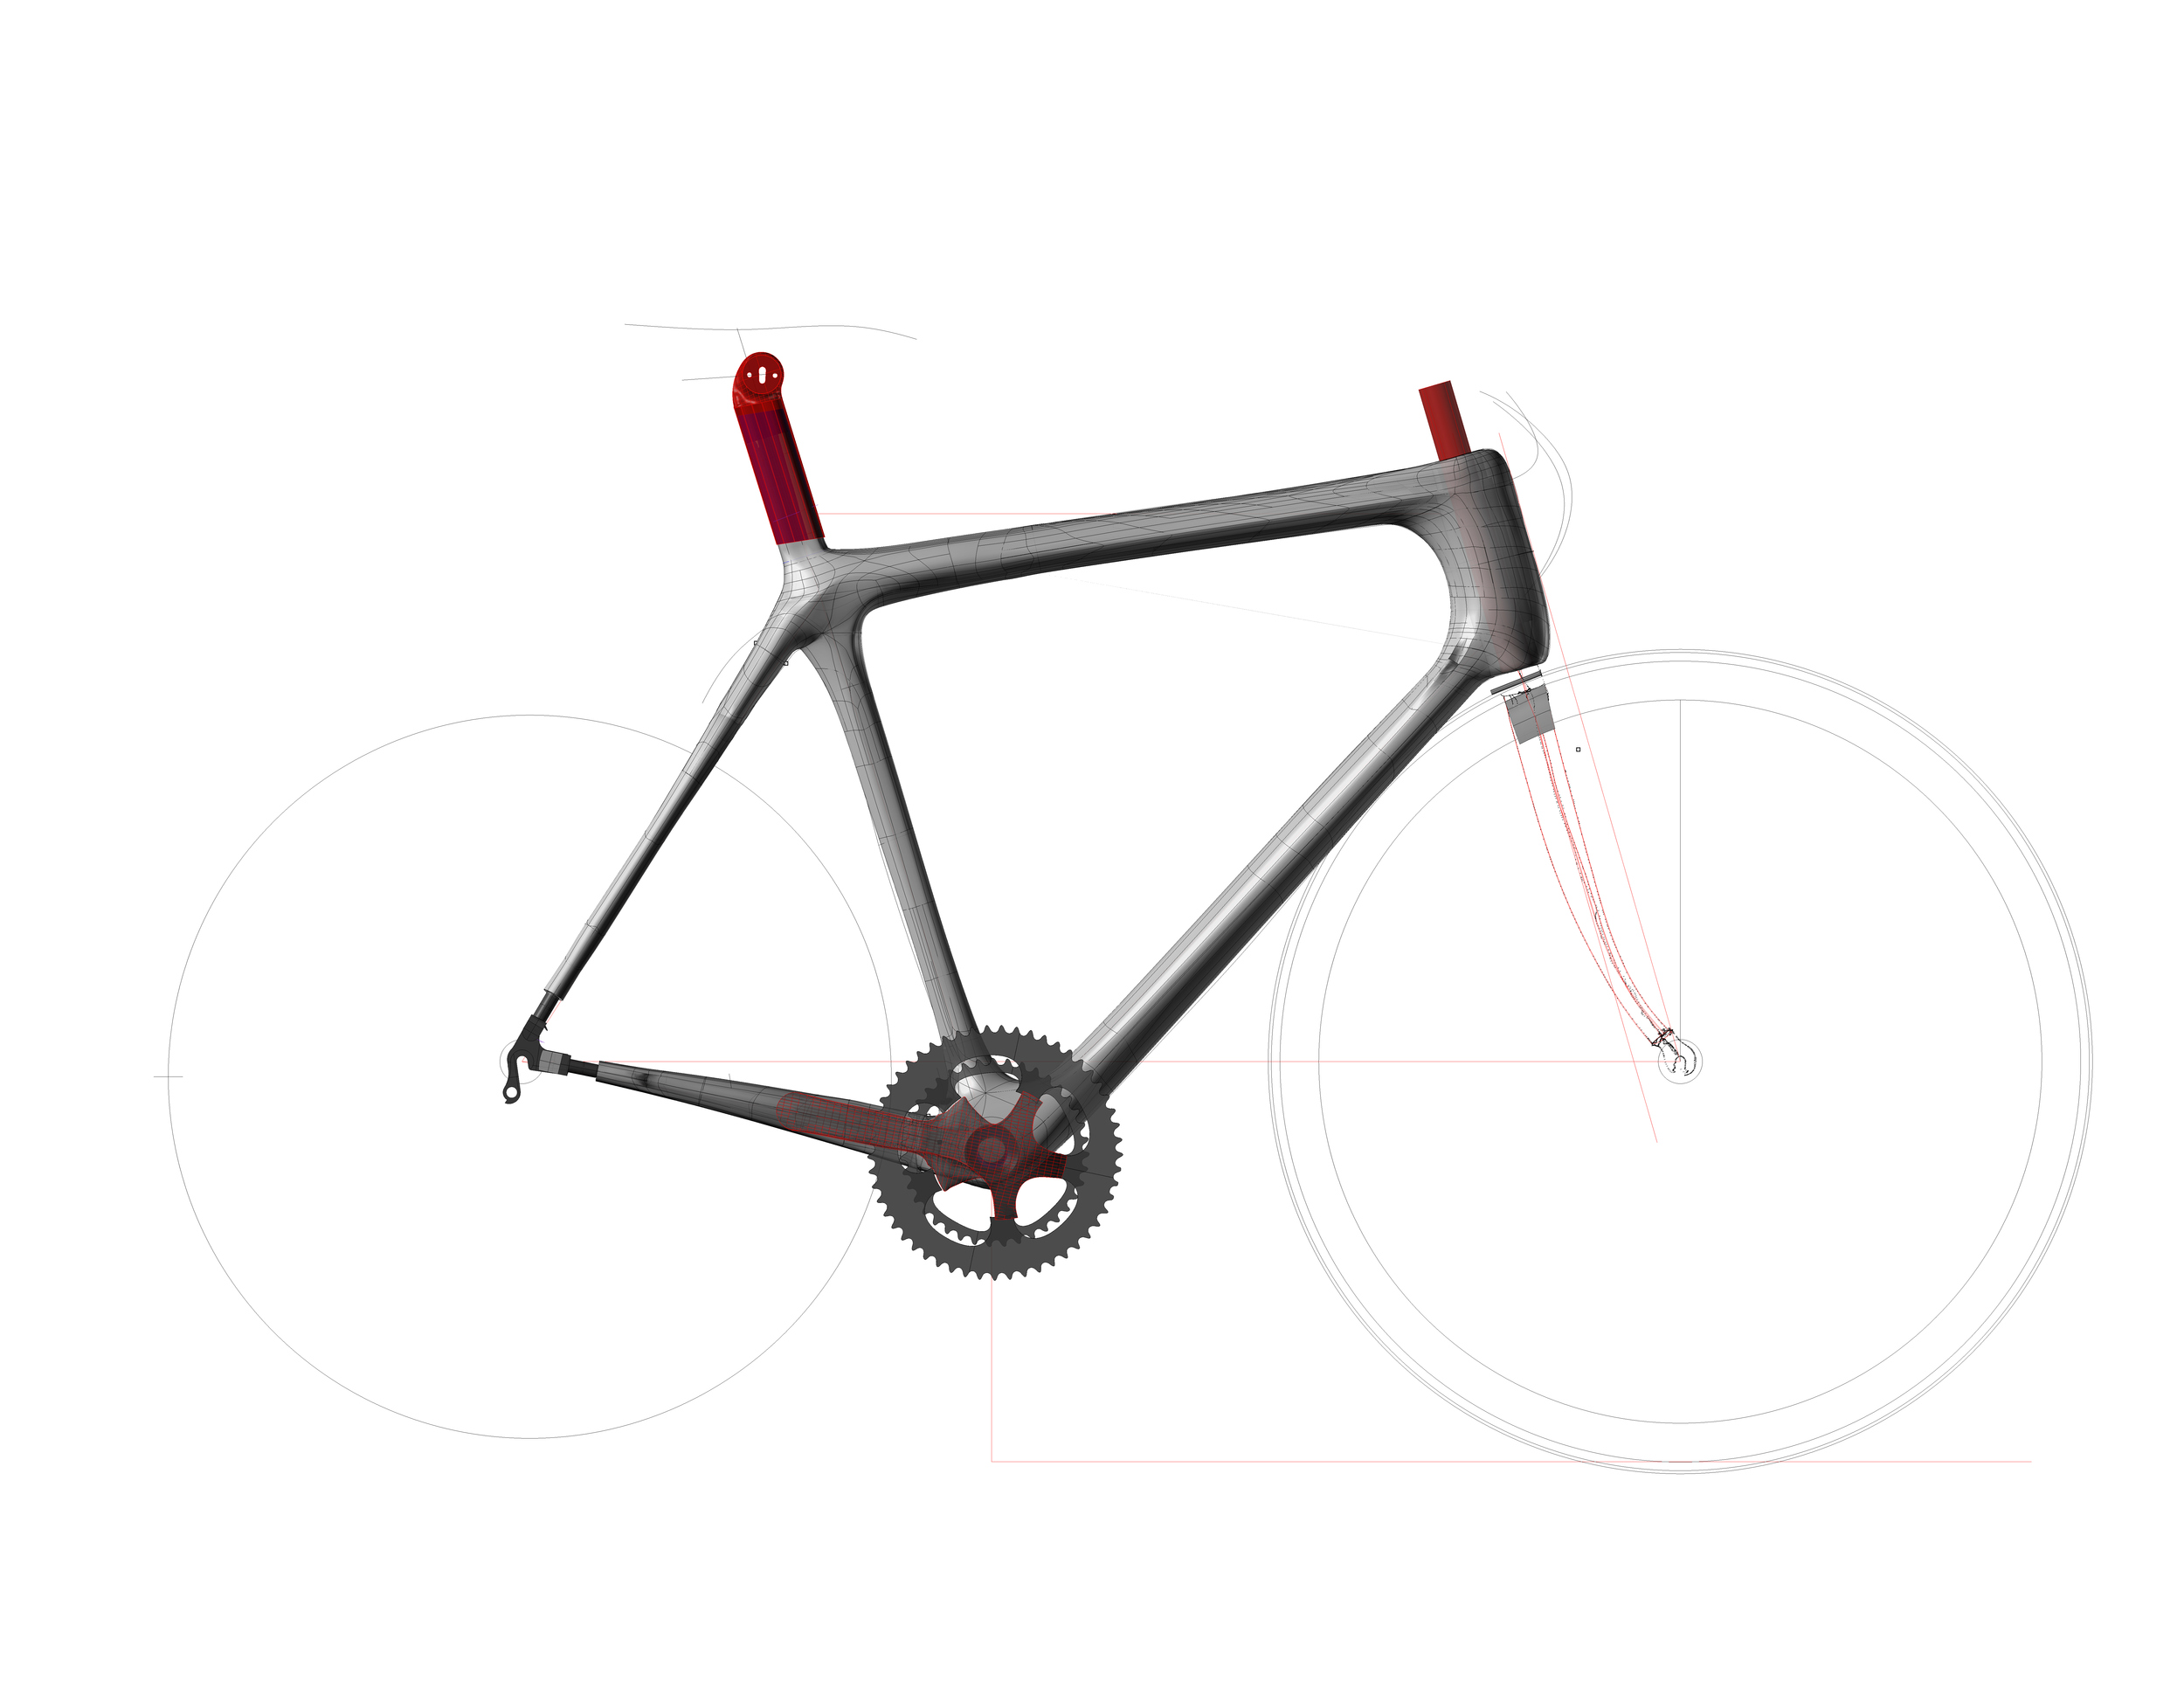 A screen capture of the finished frame showing dropout fits and seat and stem mounting.